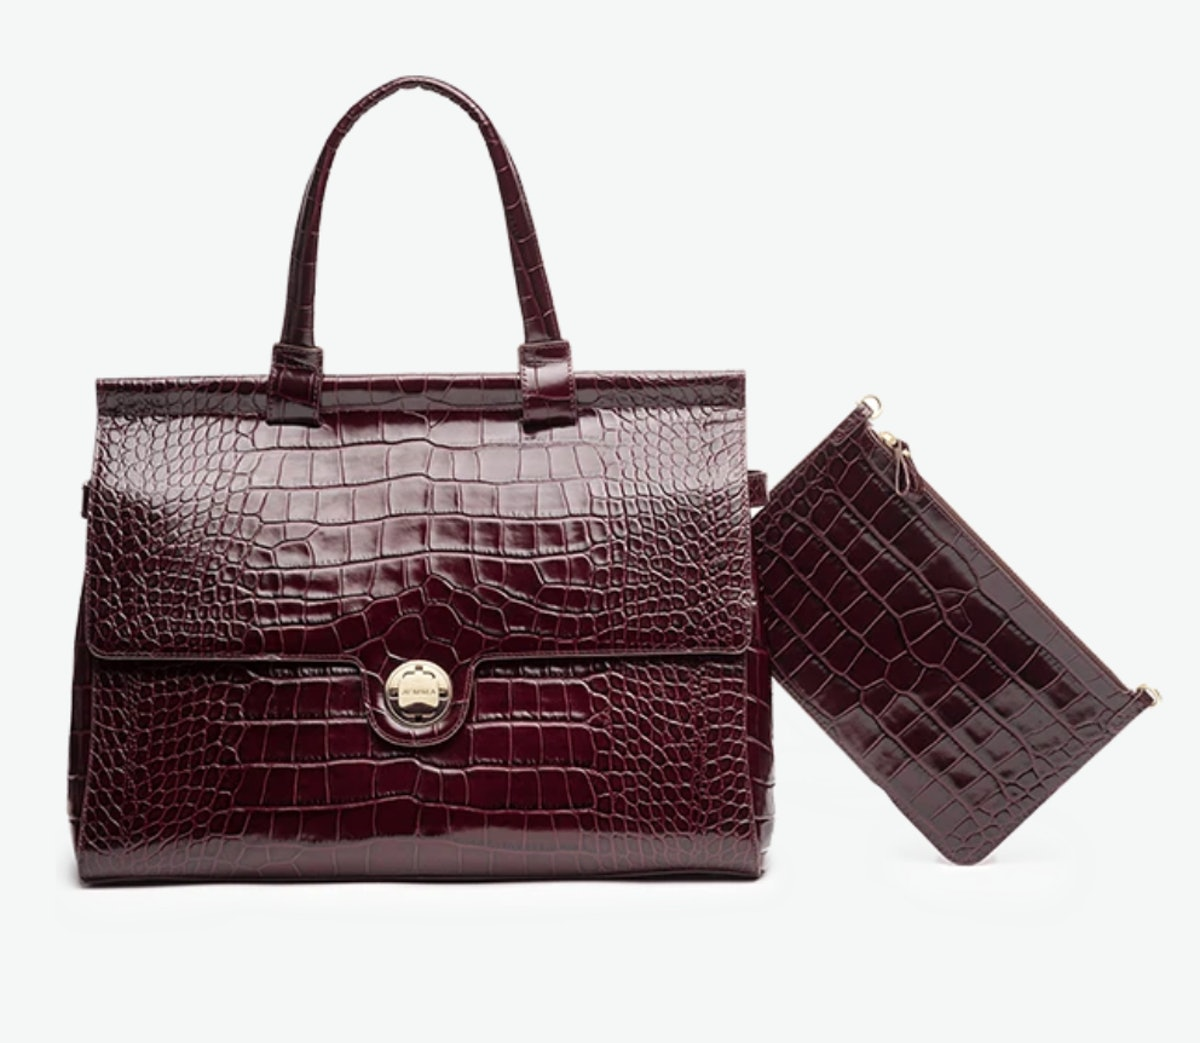 JEMMa's crocodile bordeaux traveler tote that has a section for your laptop.